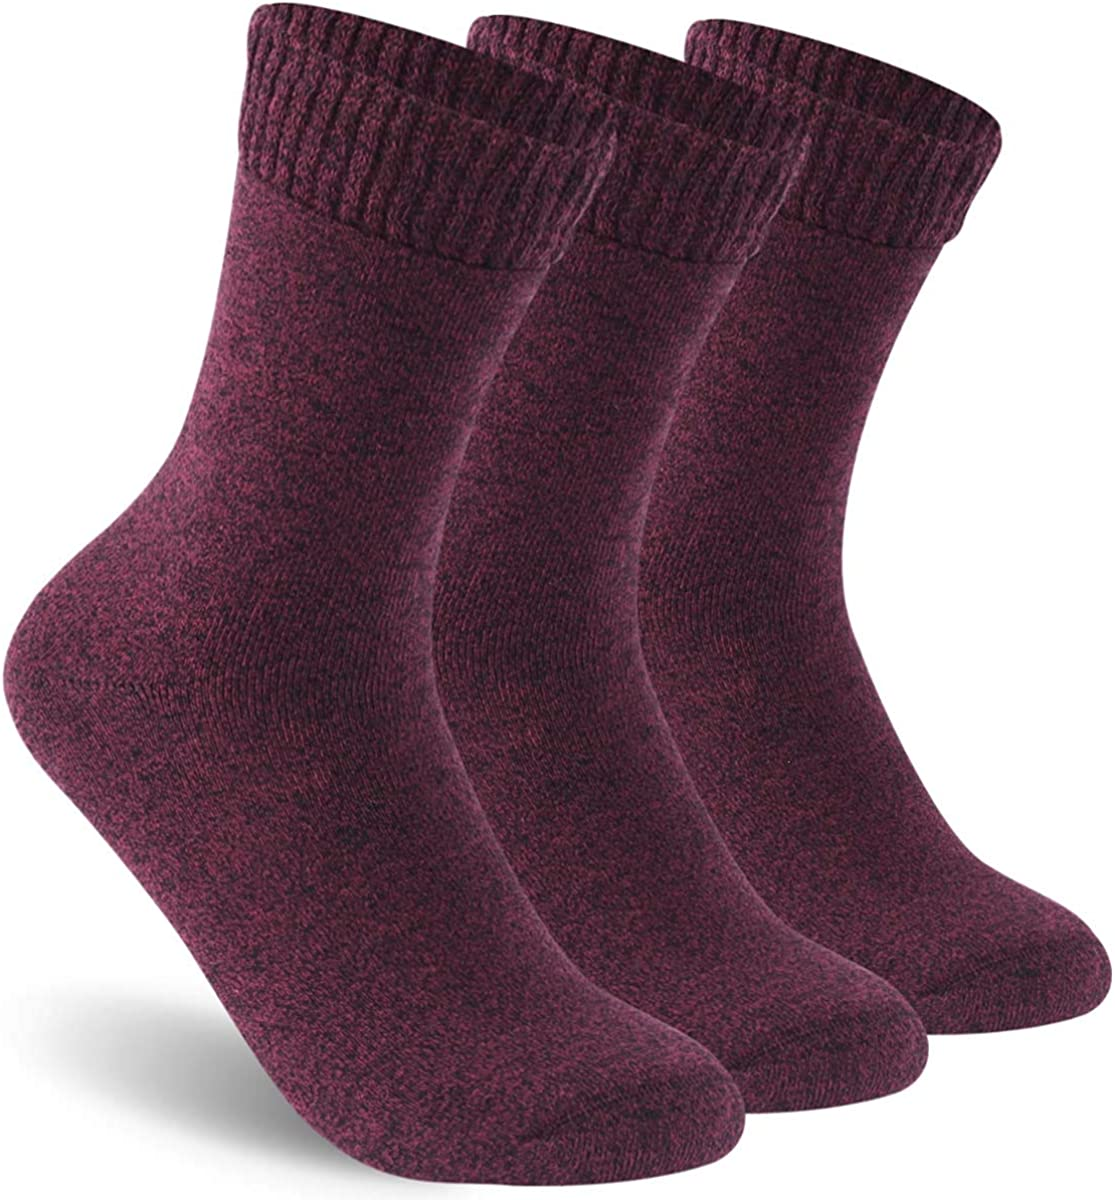 Facool Diabetic Socks for Men excellence Medical So Max 50% OFF Women Circulatory